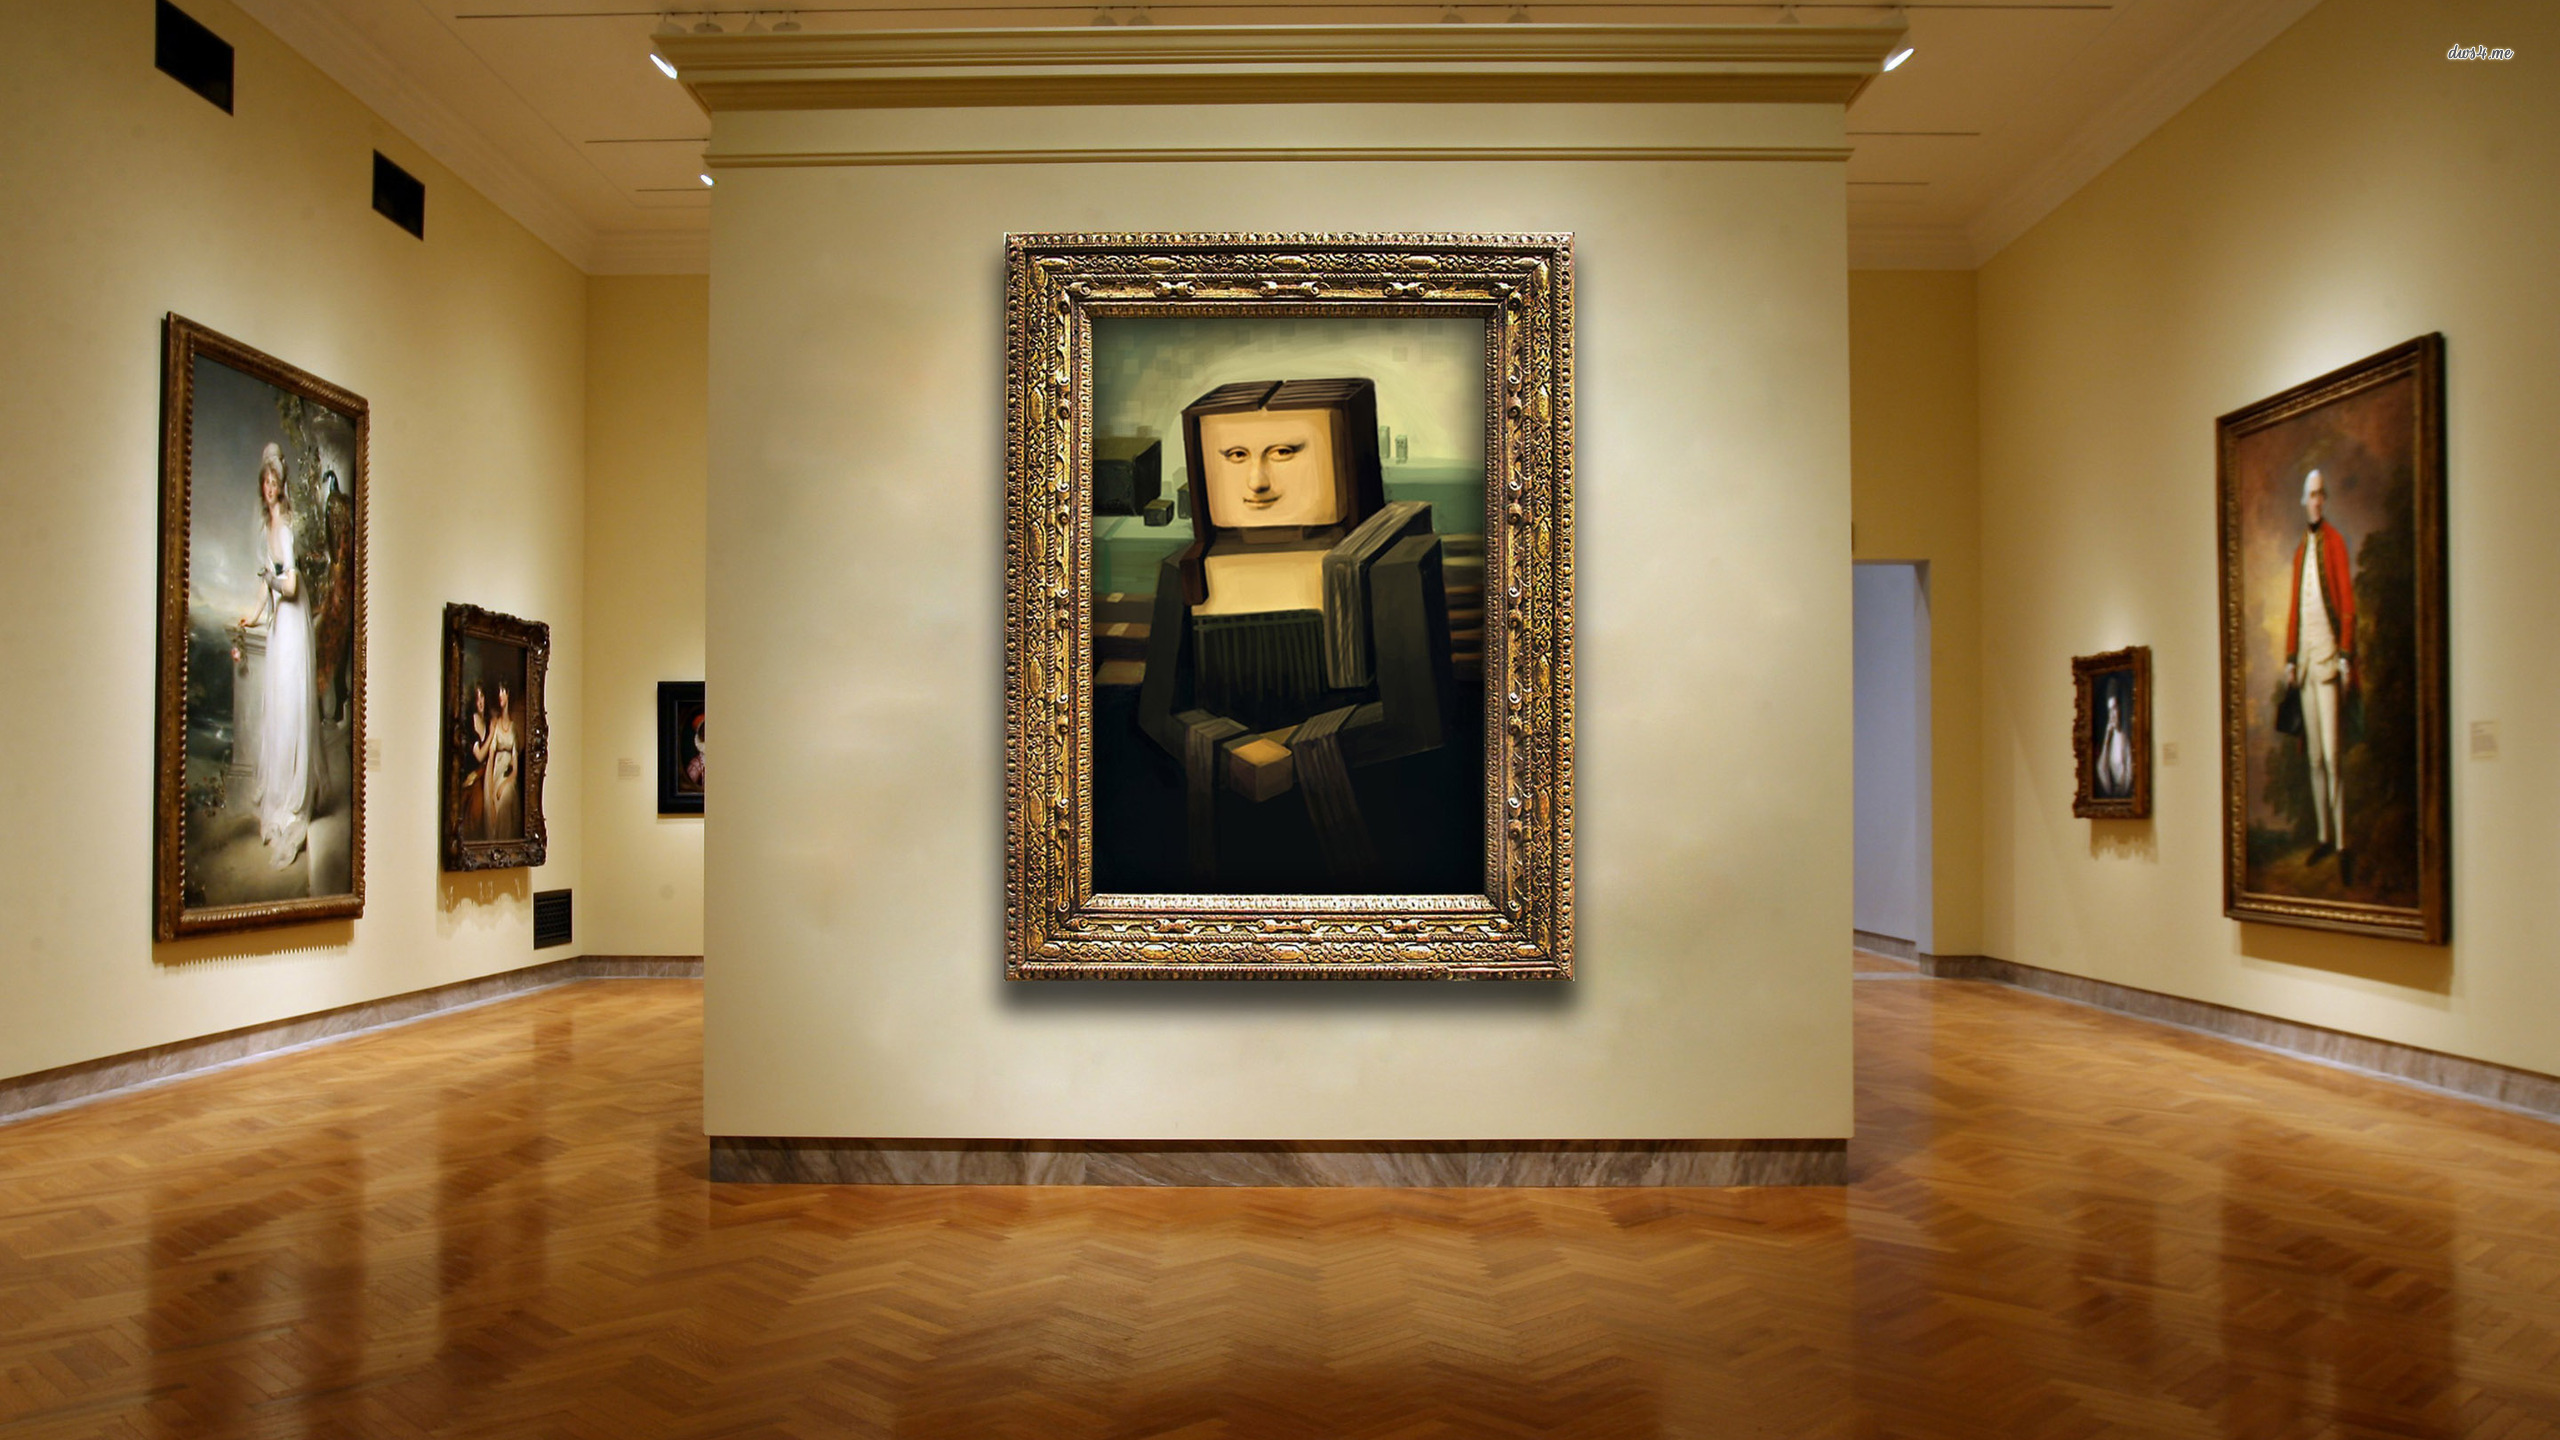 ... Mona Lisa in cubism wallpaper 2560x1440 ...